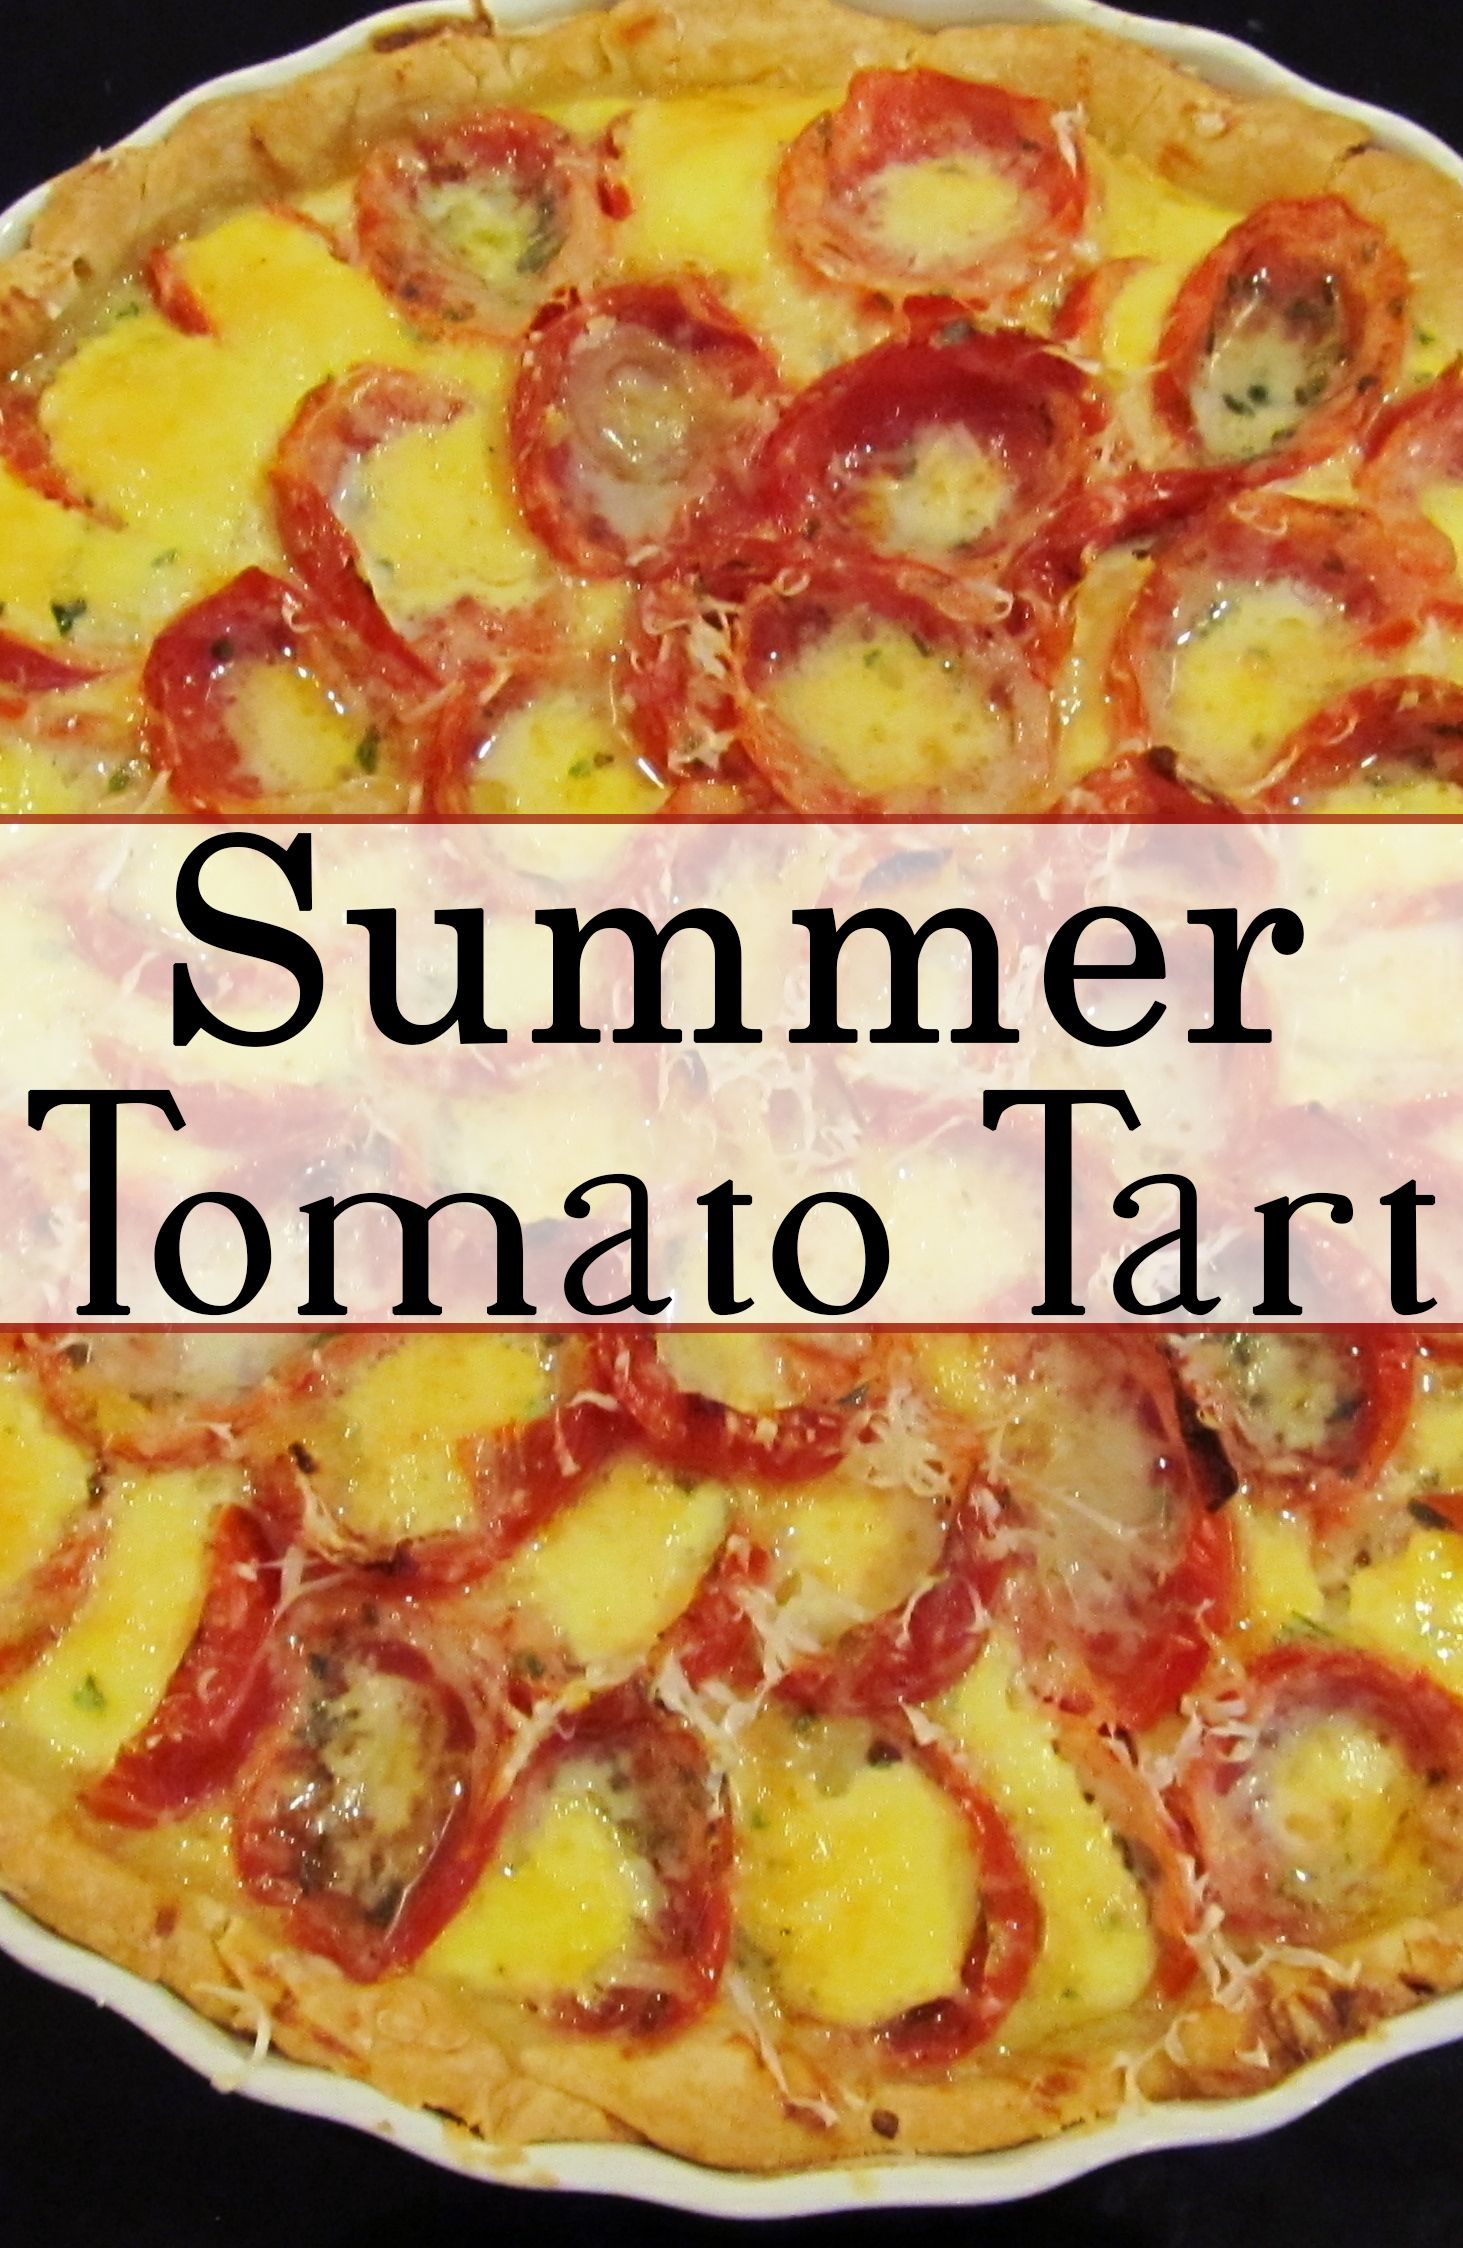 If you have an excess of tomatoes from your garden, try out this tasty tart! It's great for summer!